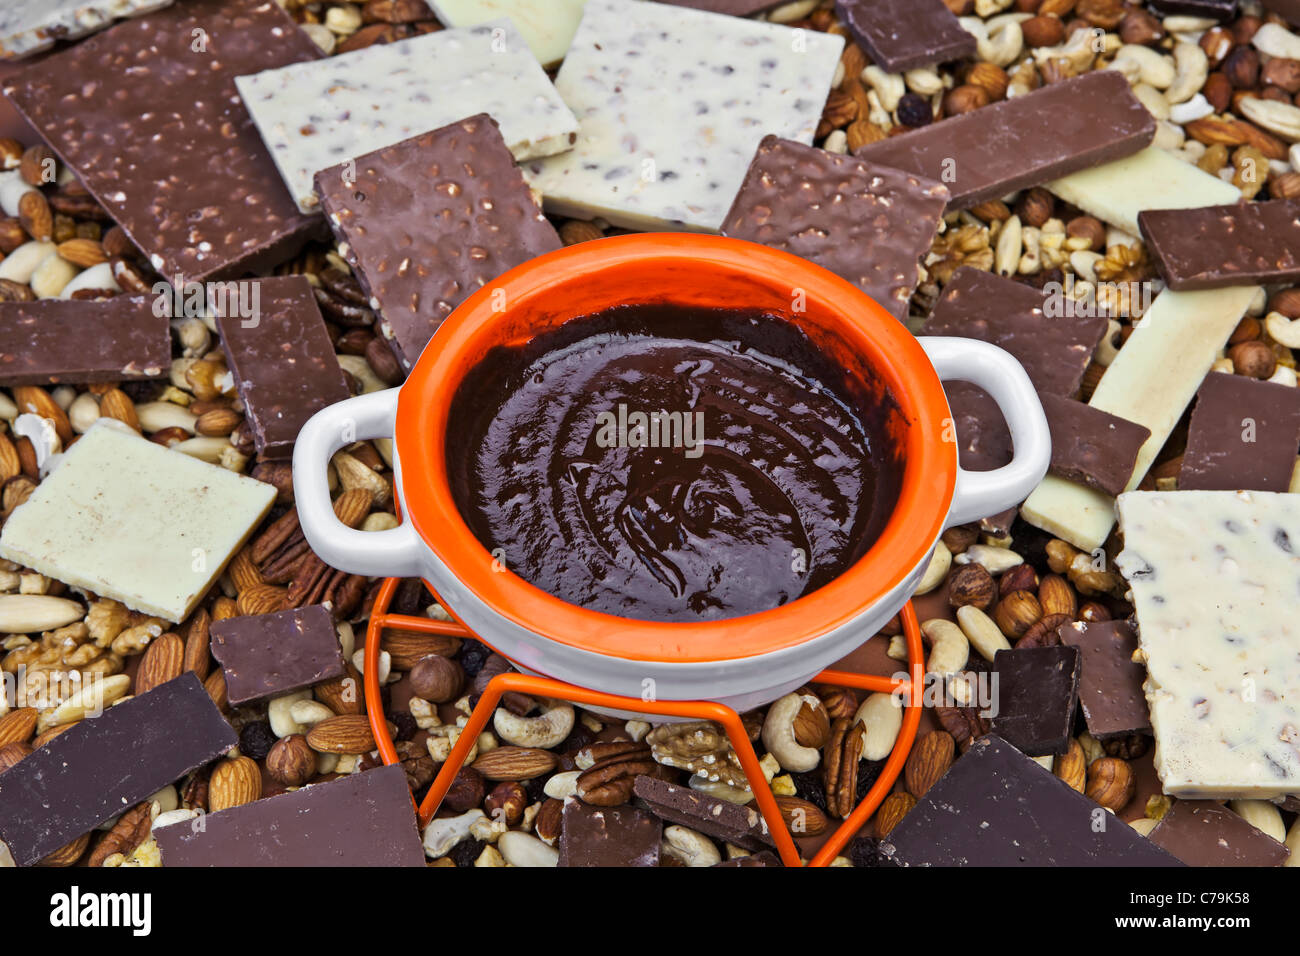 melted chocolate in a fondue pot in the middle of a stack of chocolate pieces - Stock Image